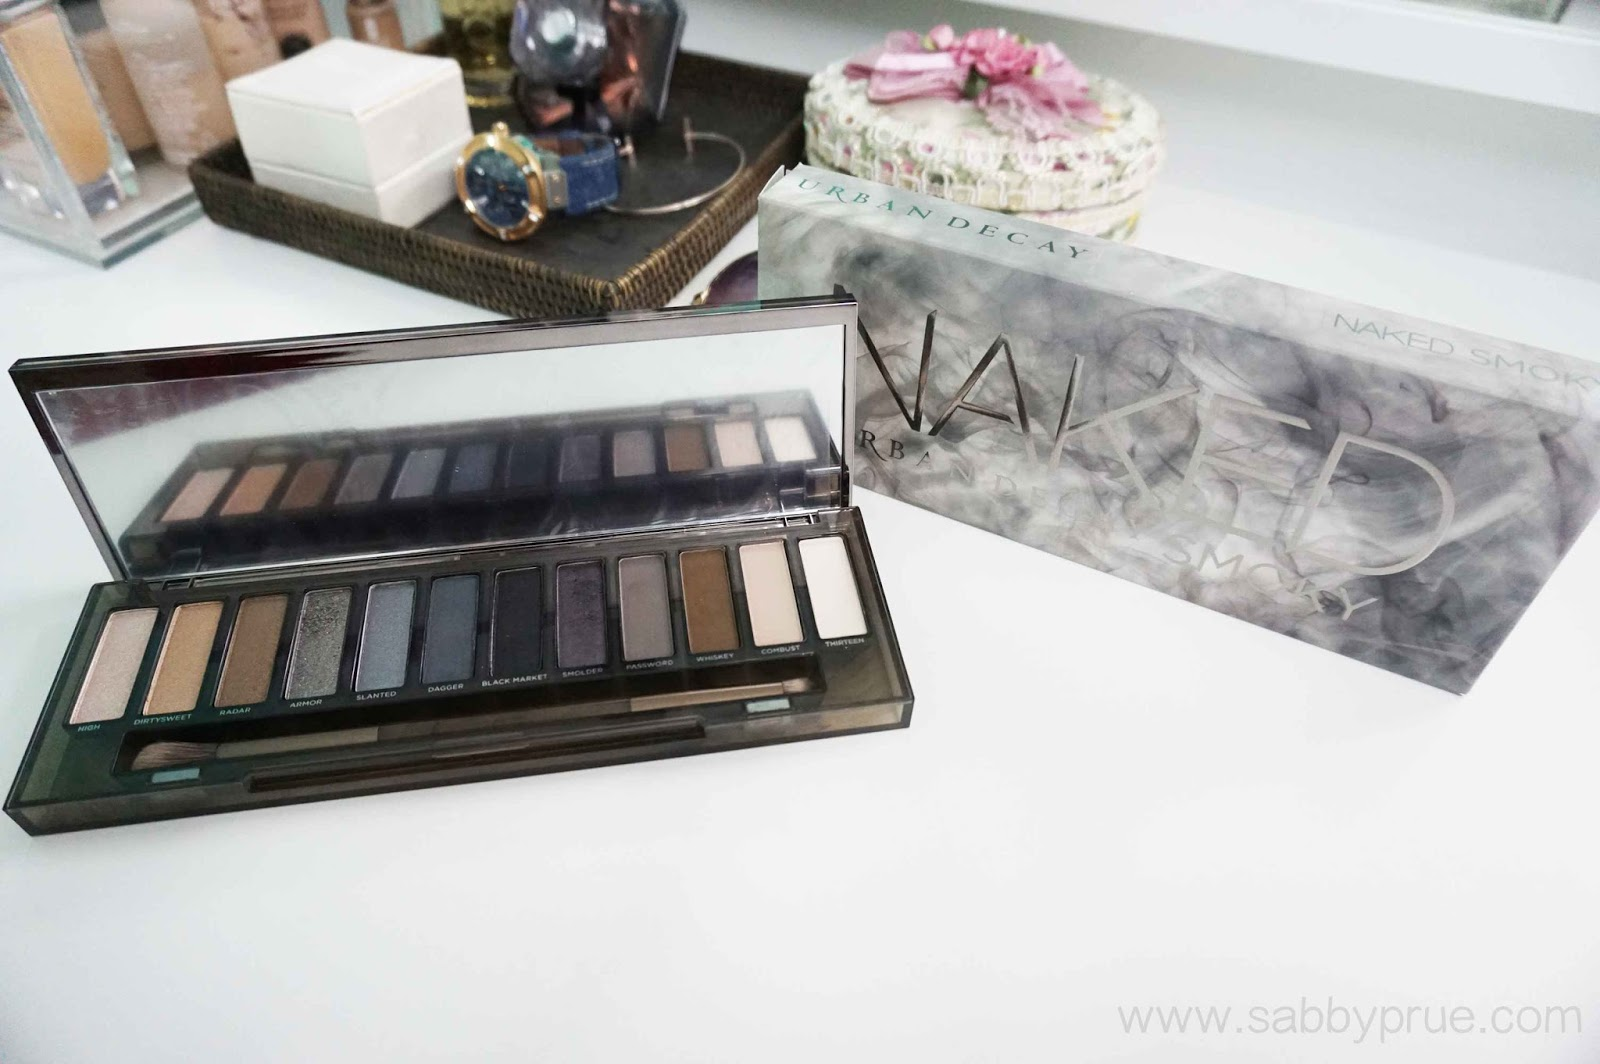 Beauty Review Urban Decay Naked Smoky Eyeshadow Palette The Comprises Of 12 Shimmery Satin And Matte Shades 9 Are New 3 Exclusive Colours Has An